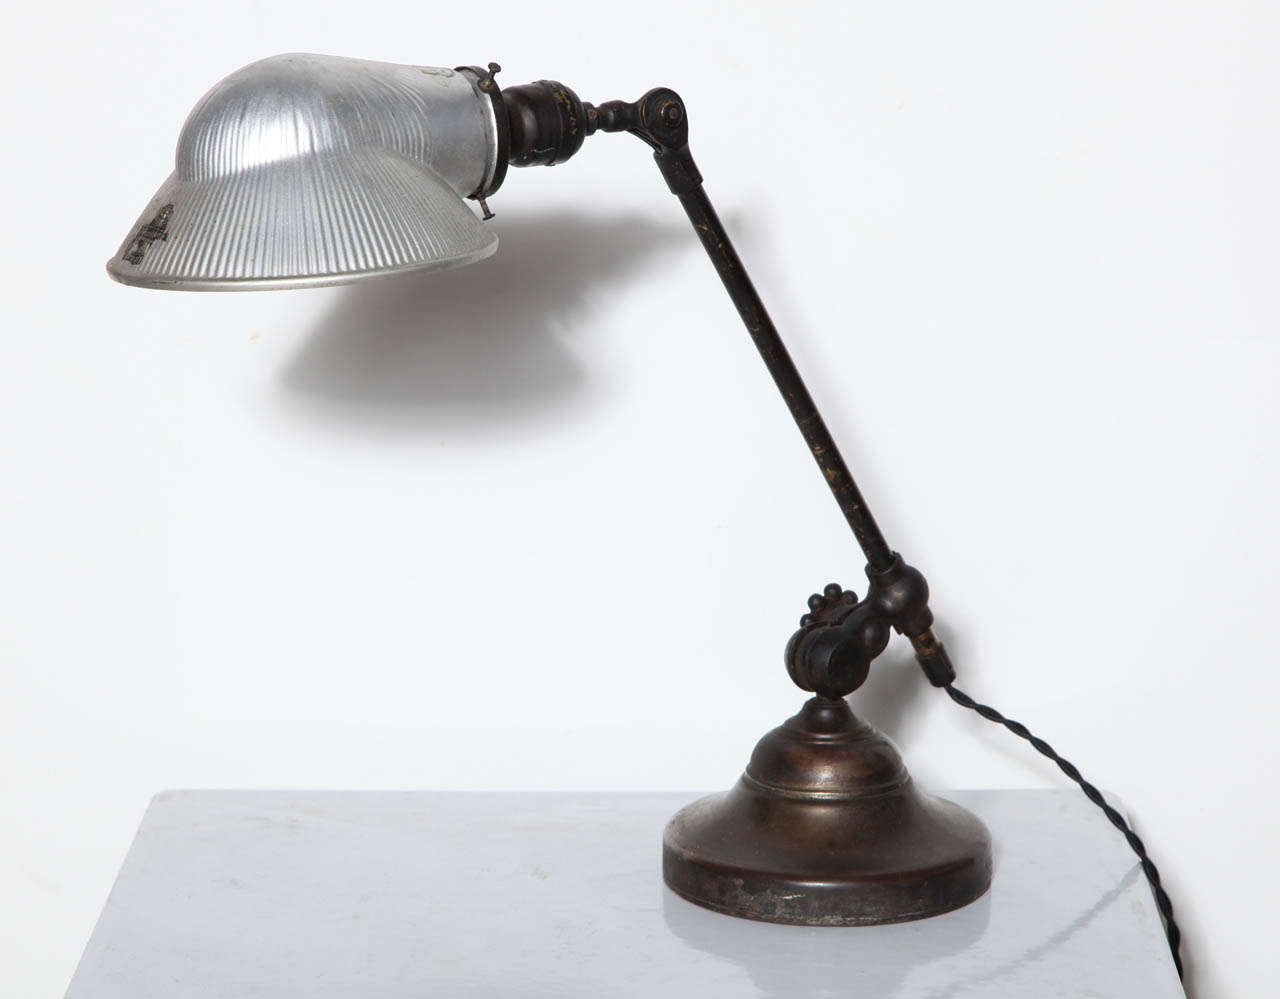 O. C. White Brass & Iron Adjustable Table Lamp with Mercury Glass Shade, C. 1900 For Sale 3